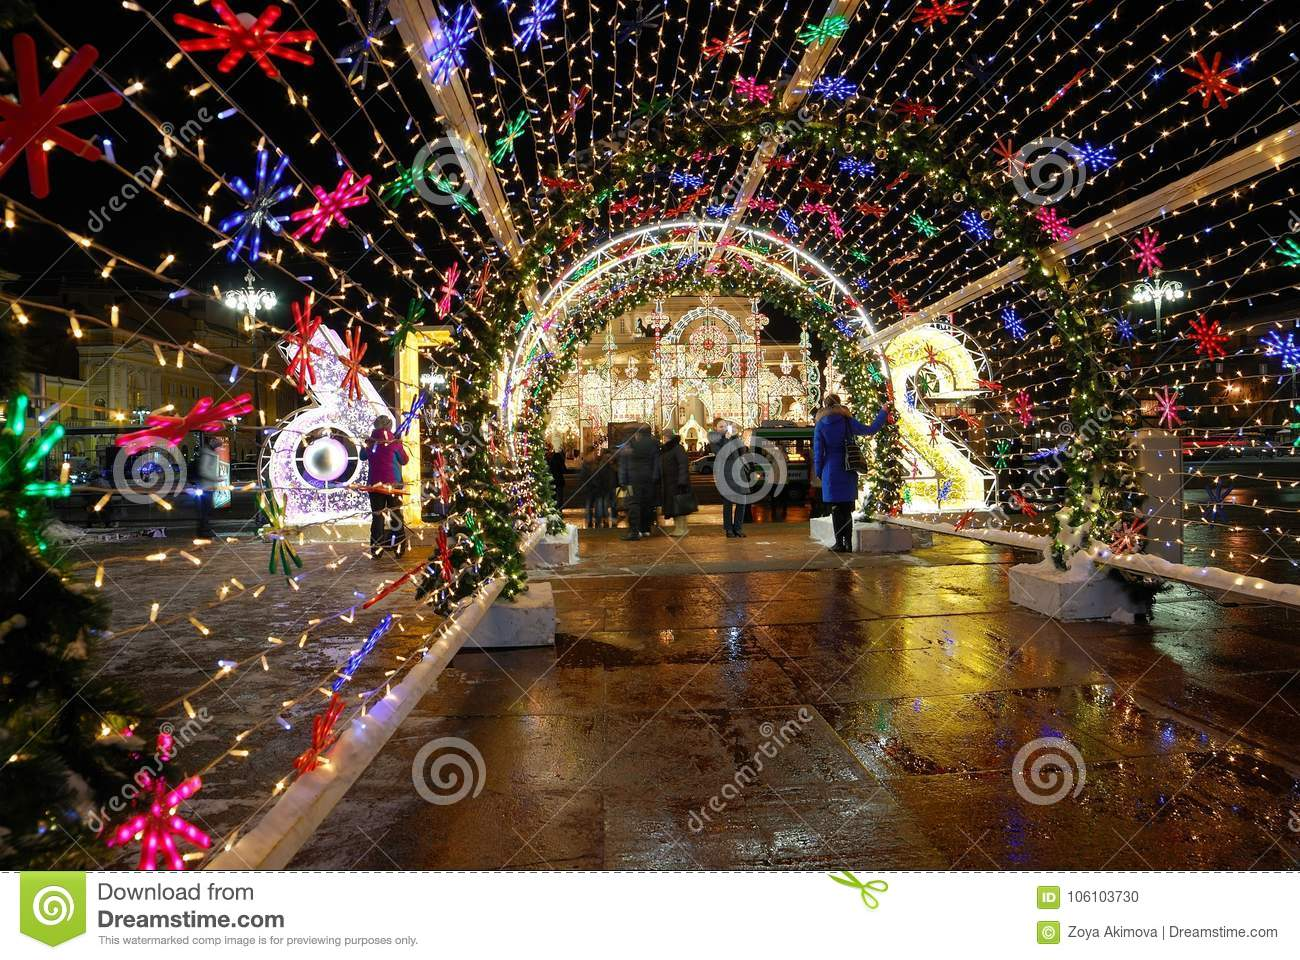 Festive decoration of the streets on the occasion of New year and Christmas, Moscow, Russia